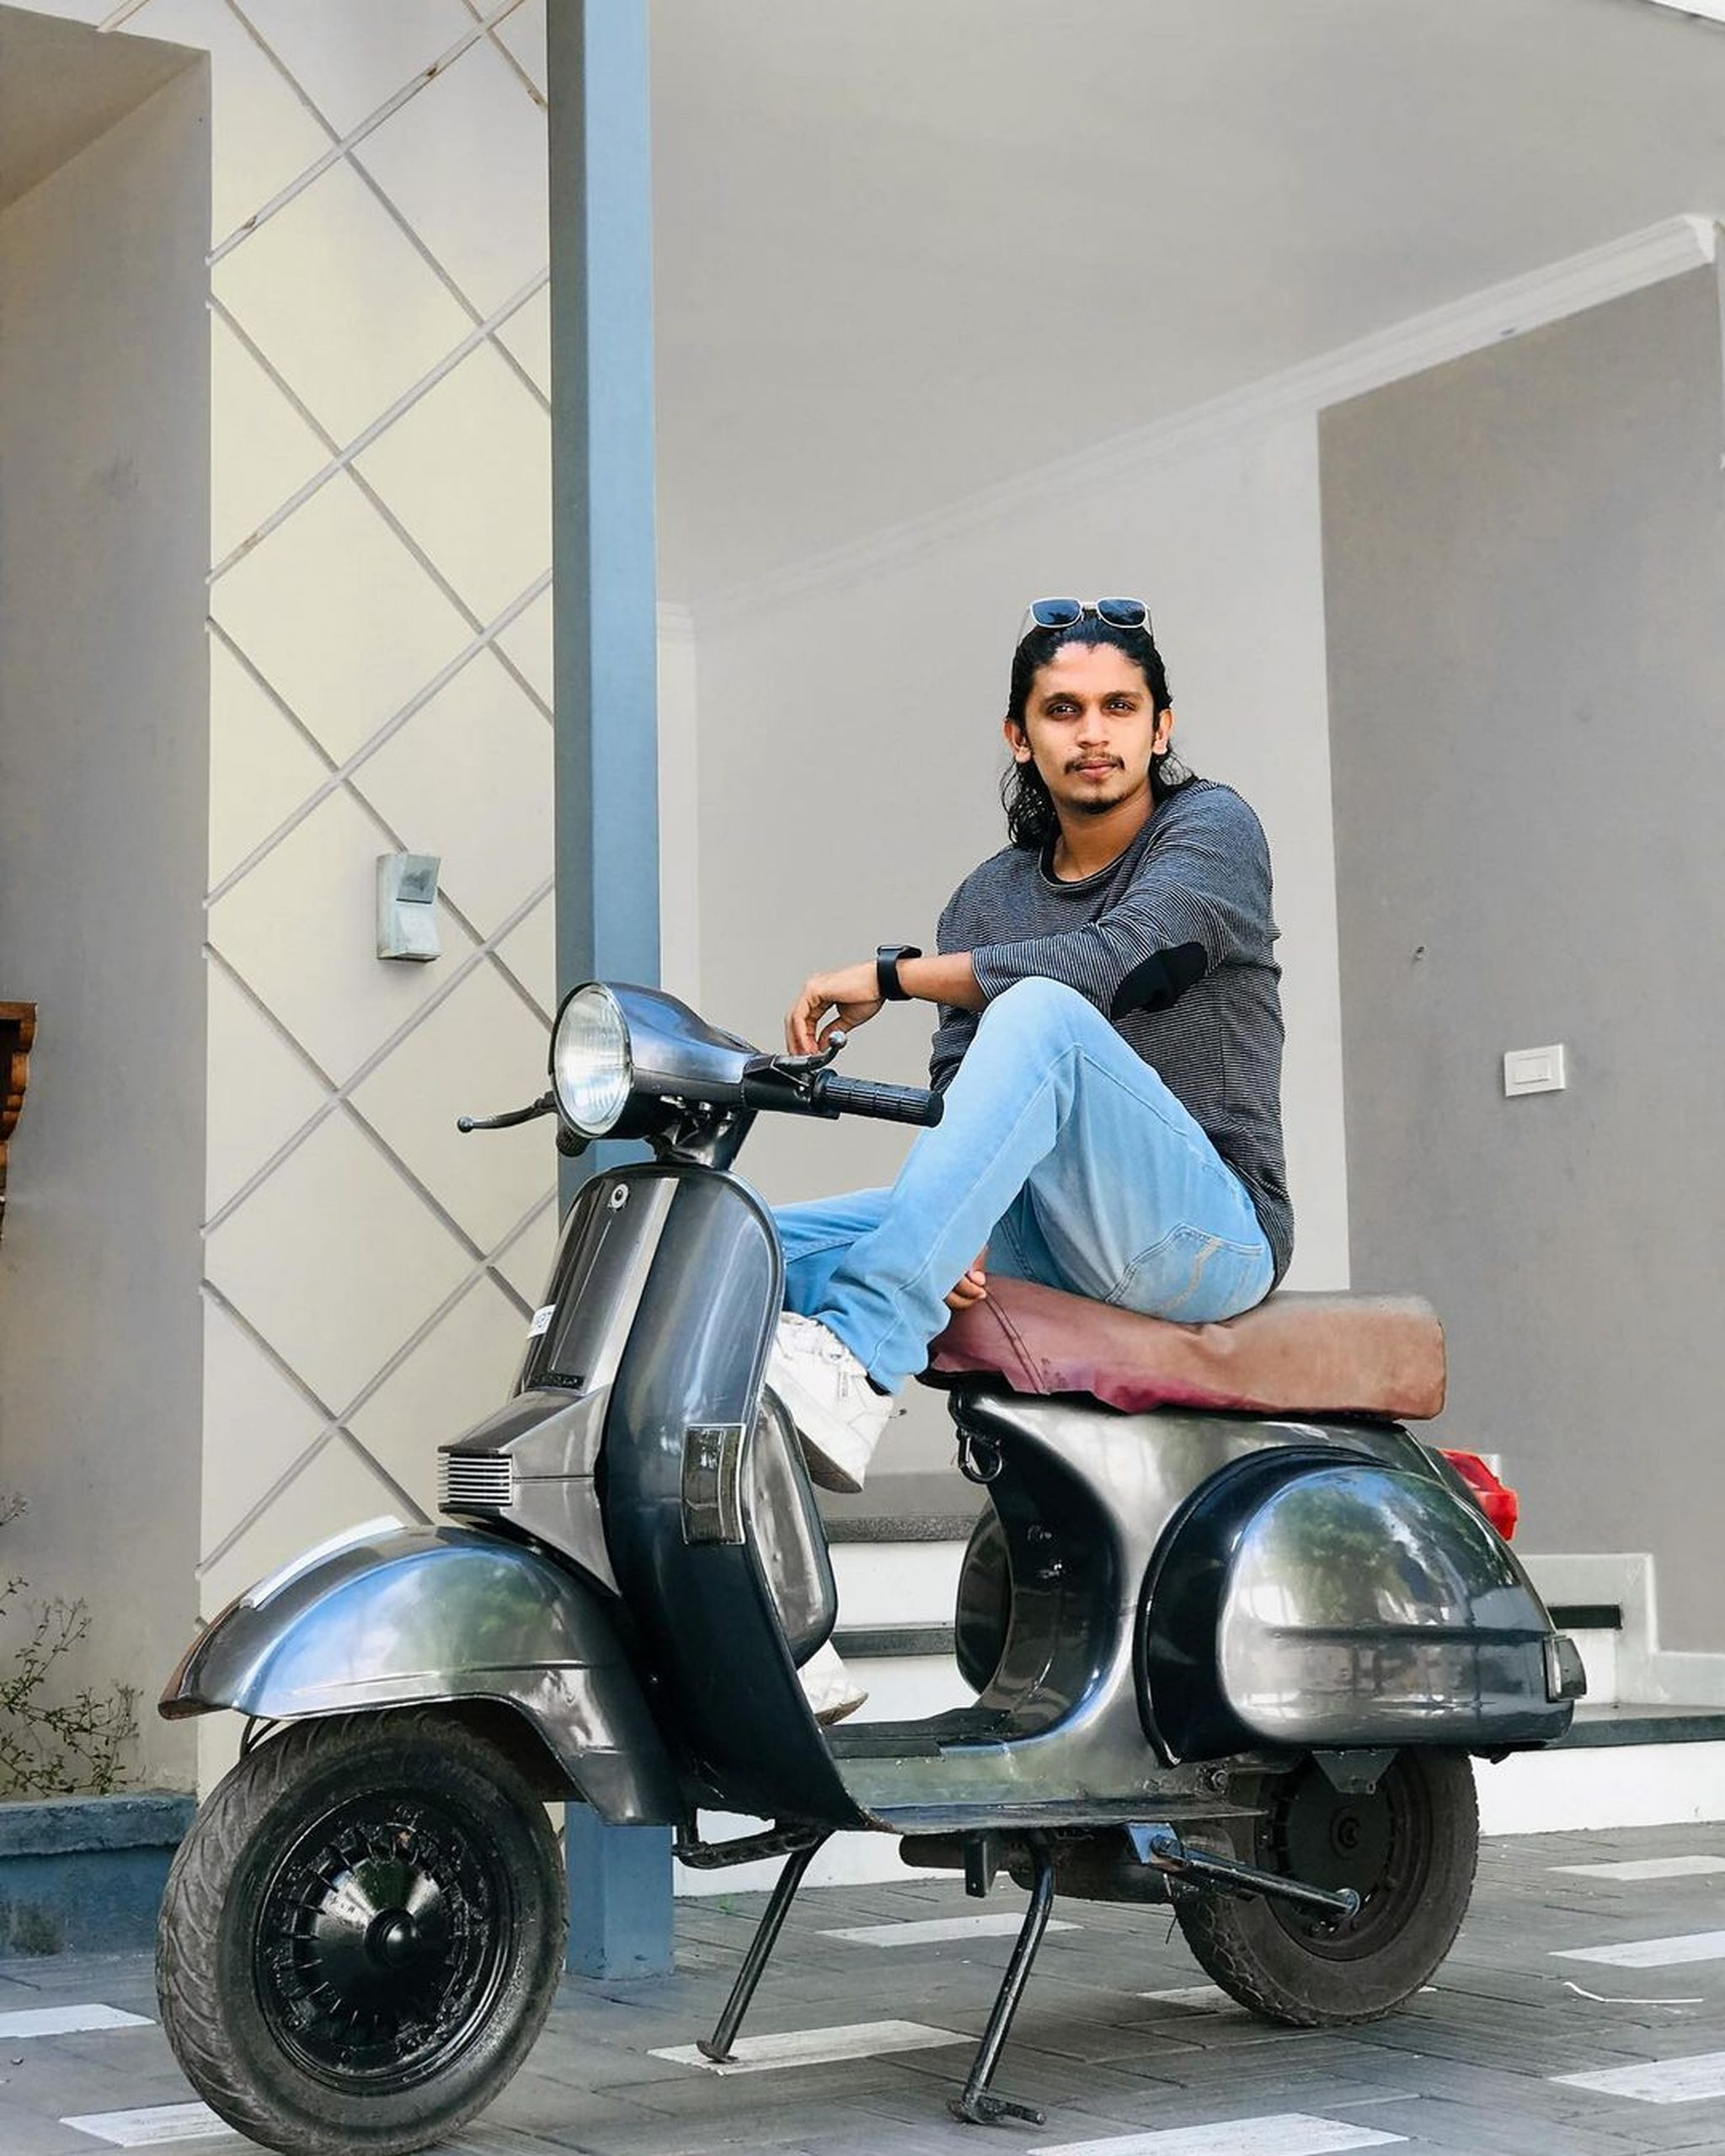 Model posing on scooter